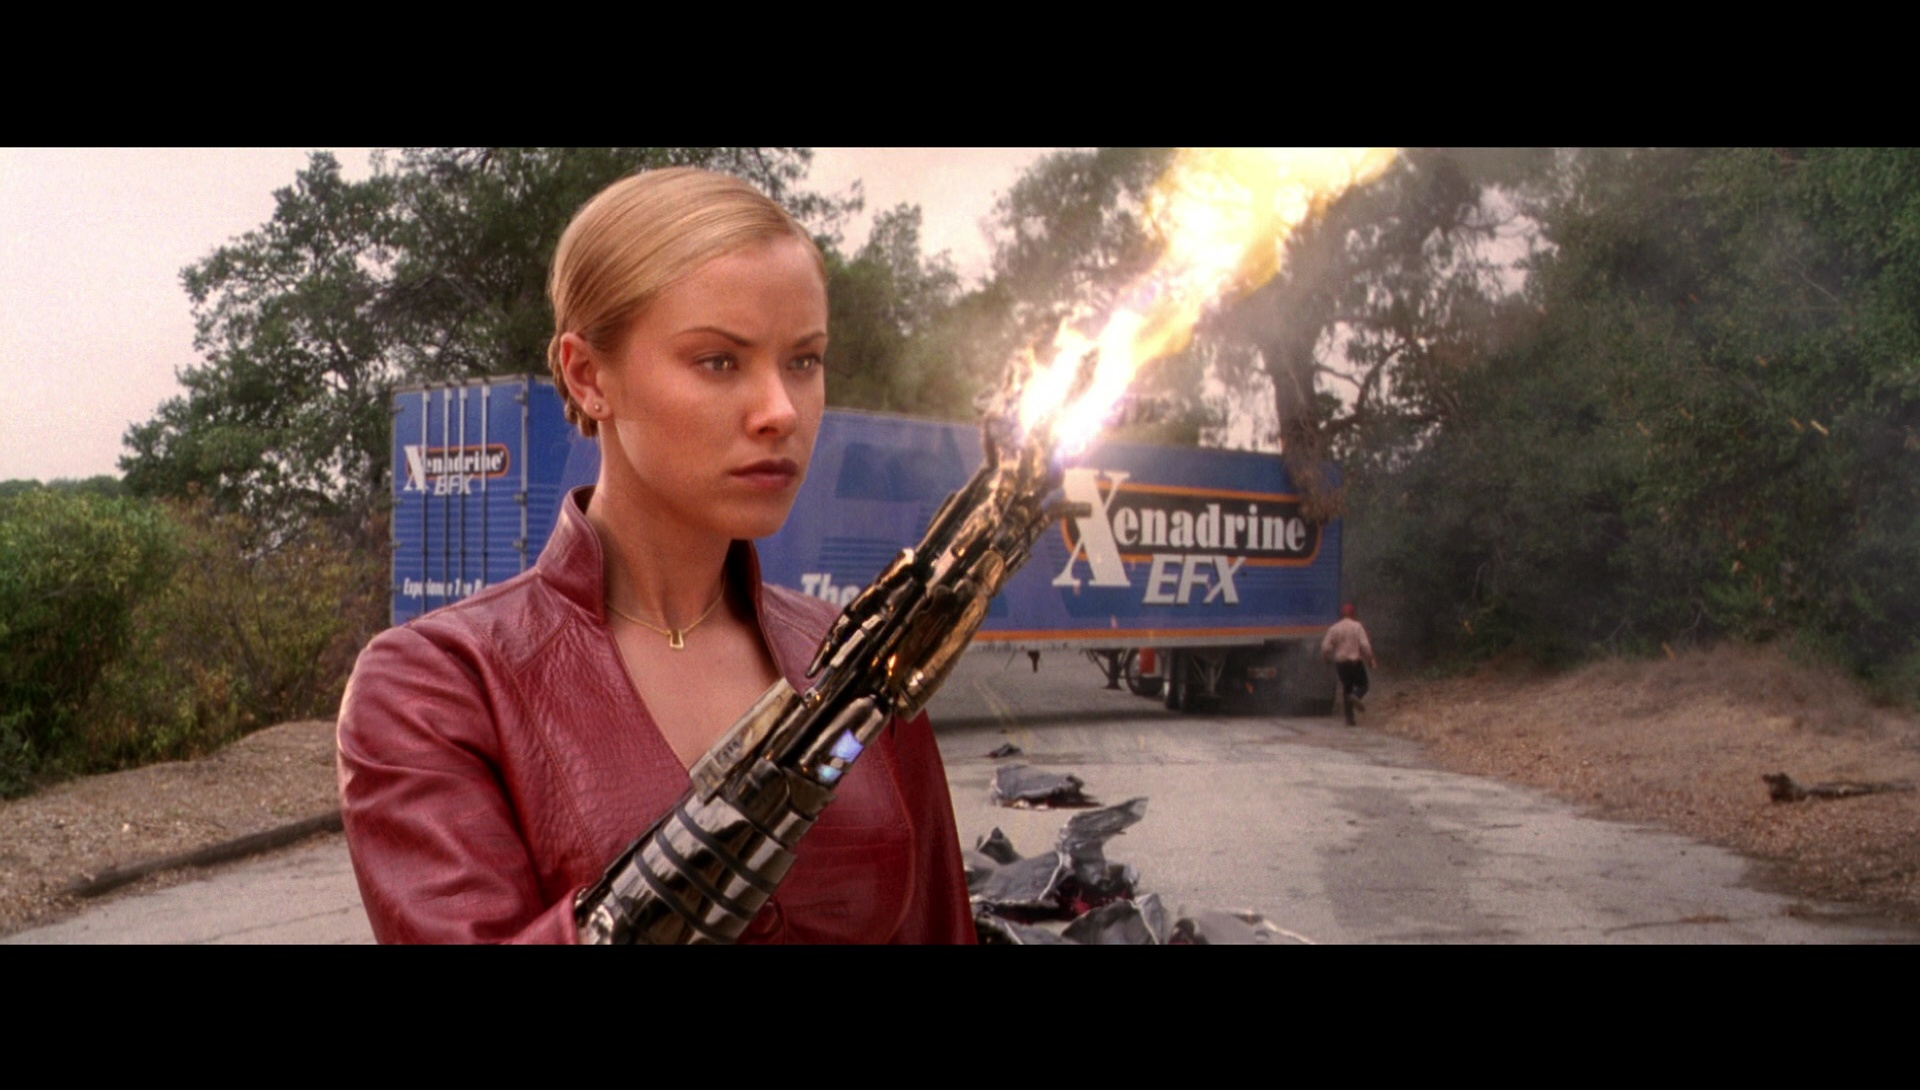 Xenadrine EFX (Weight Loss Supplement) Truck in Terminator 3: Rise of the Machines (2003)